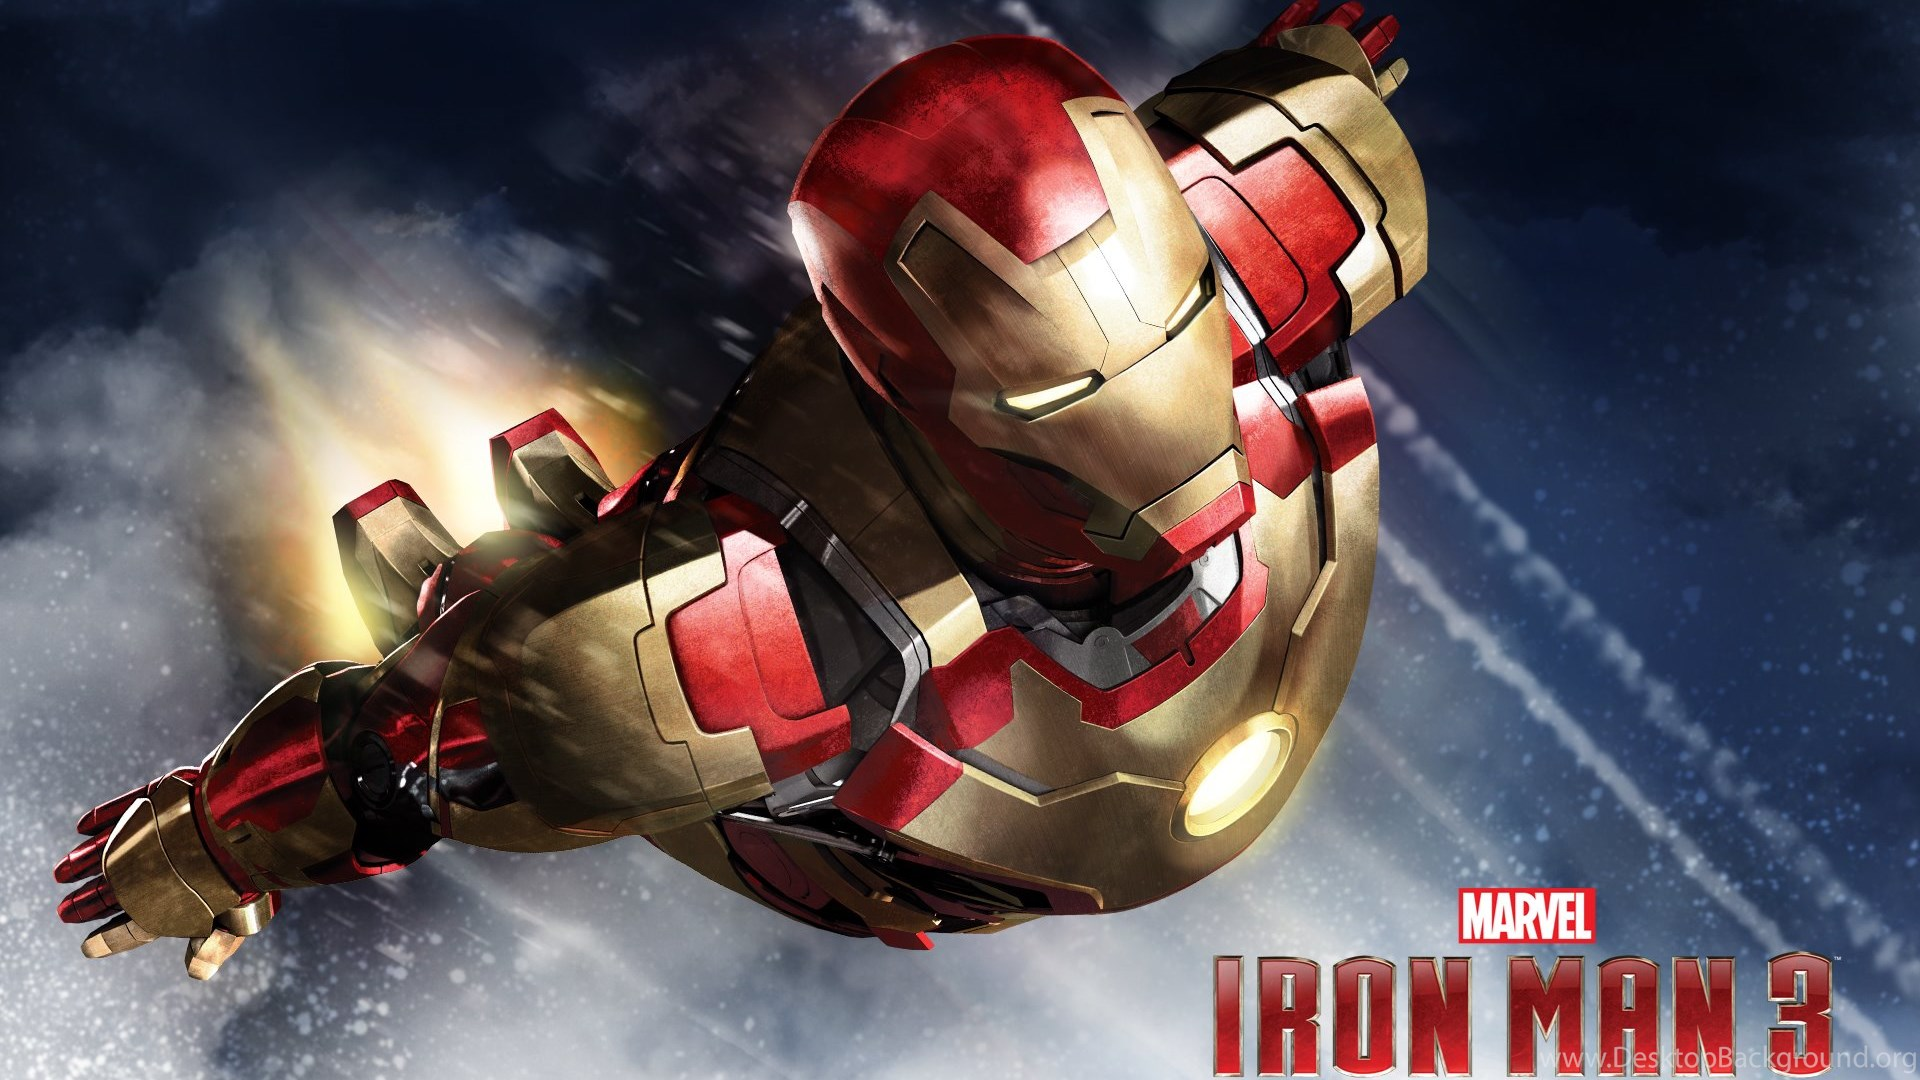 cool iron man 3 movie hd free wallpapers free hd wallpapers